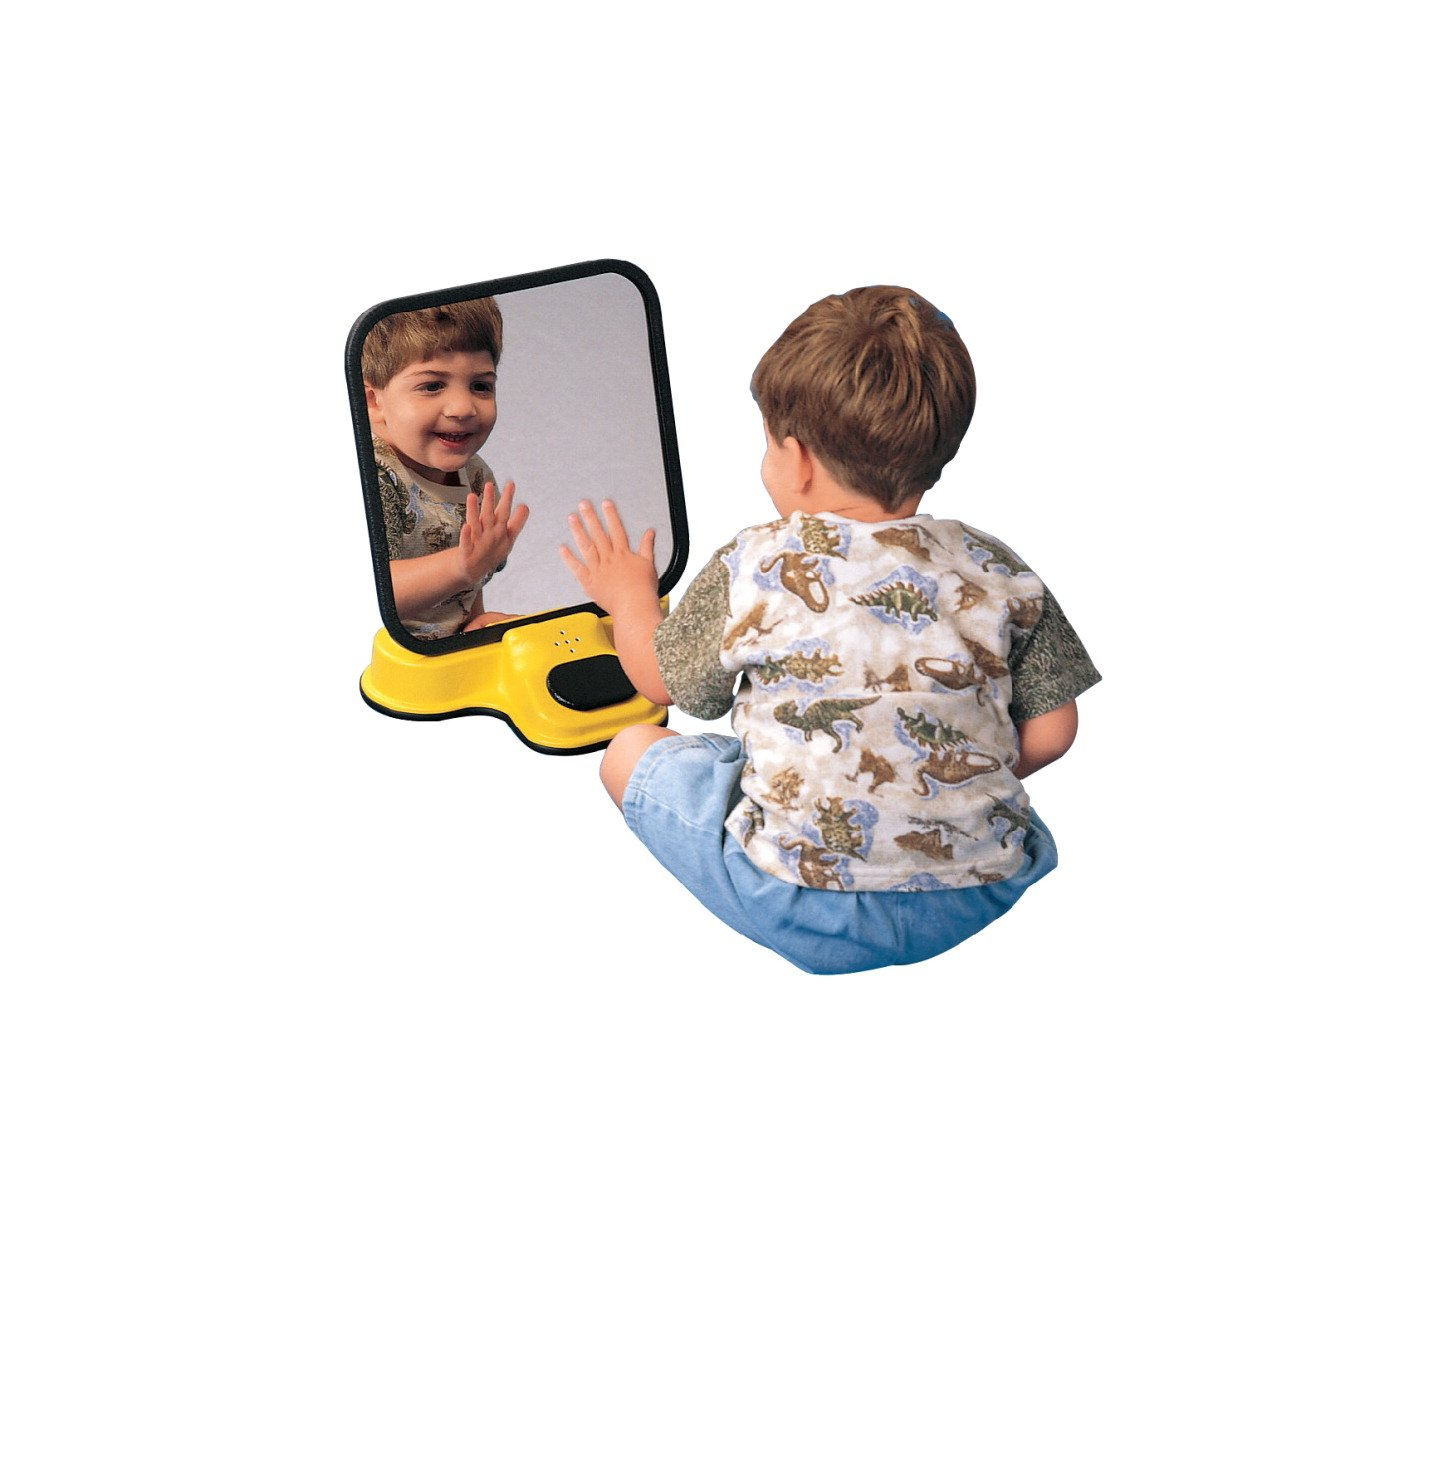 Sensation Products 100810 Talking Speech Therapy Unbreakable Mirror, Plastic, 8'' Length x 12'' Width x 14'' Height